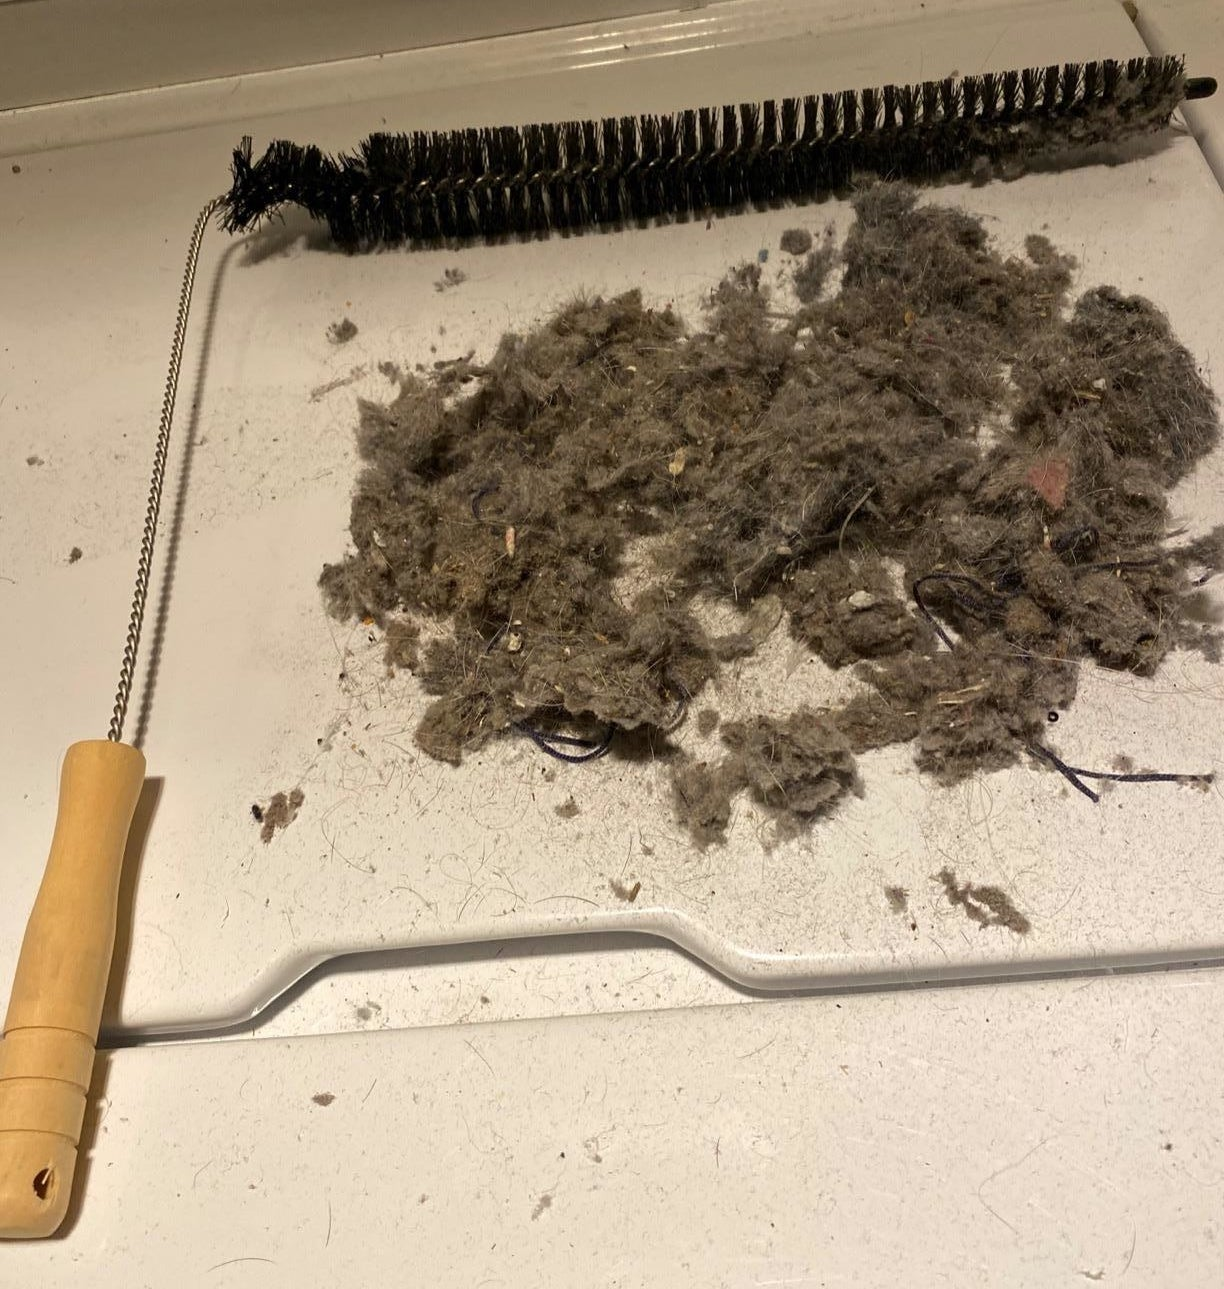 reviewer photo showing the dryer lint brush next to a pile of dust and lint on their dryer